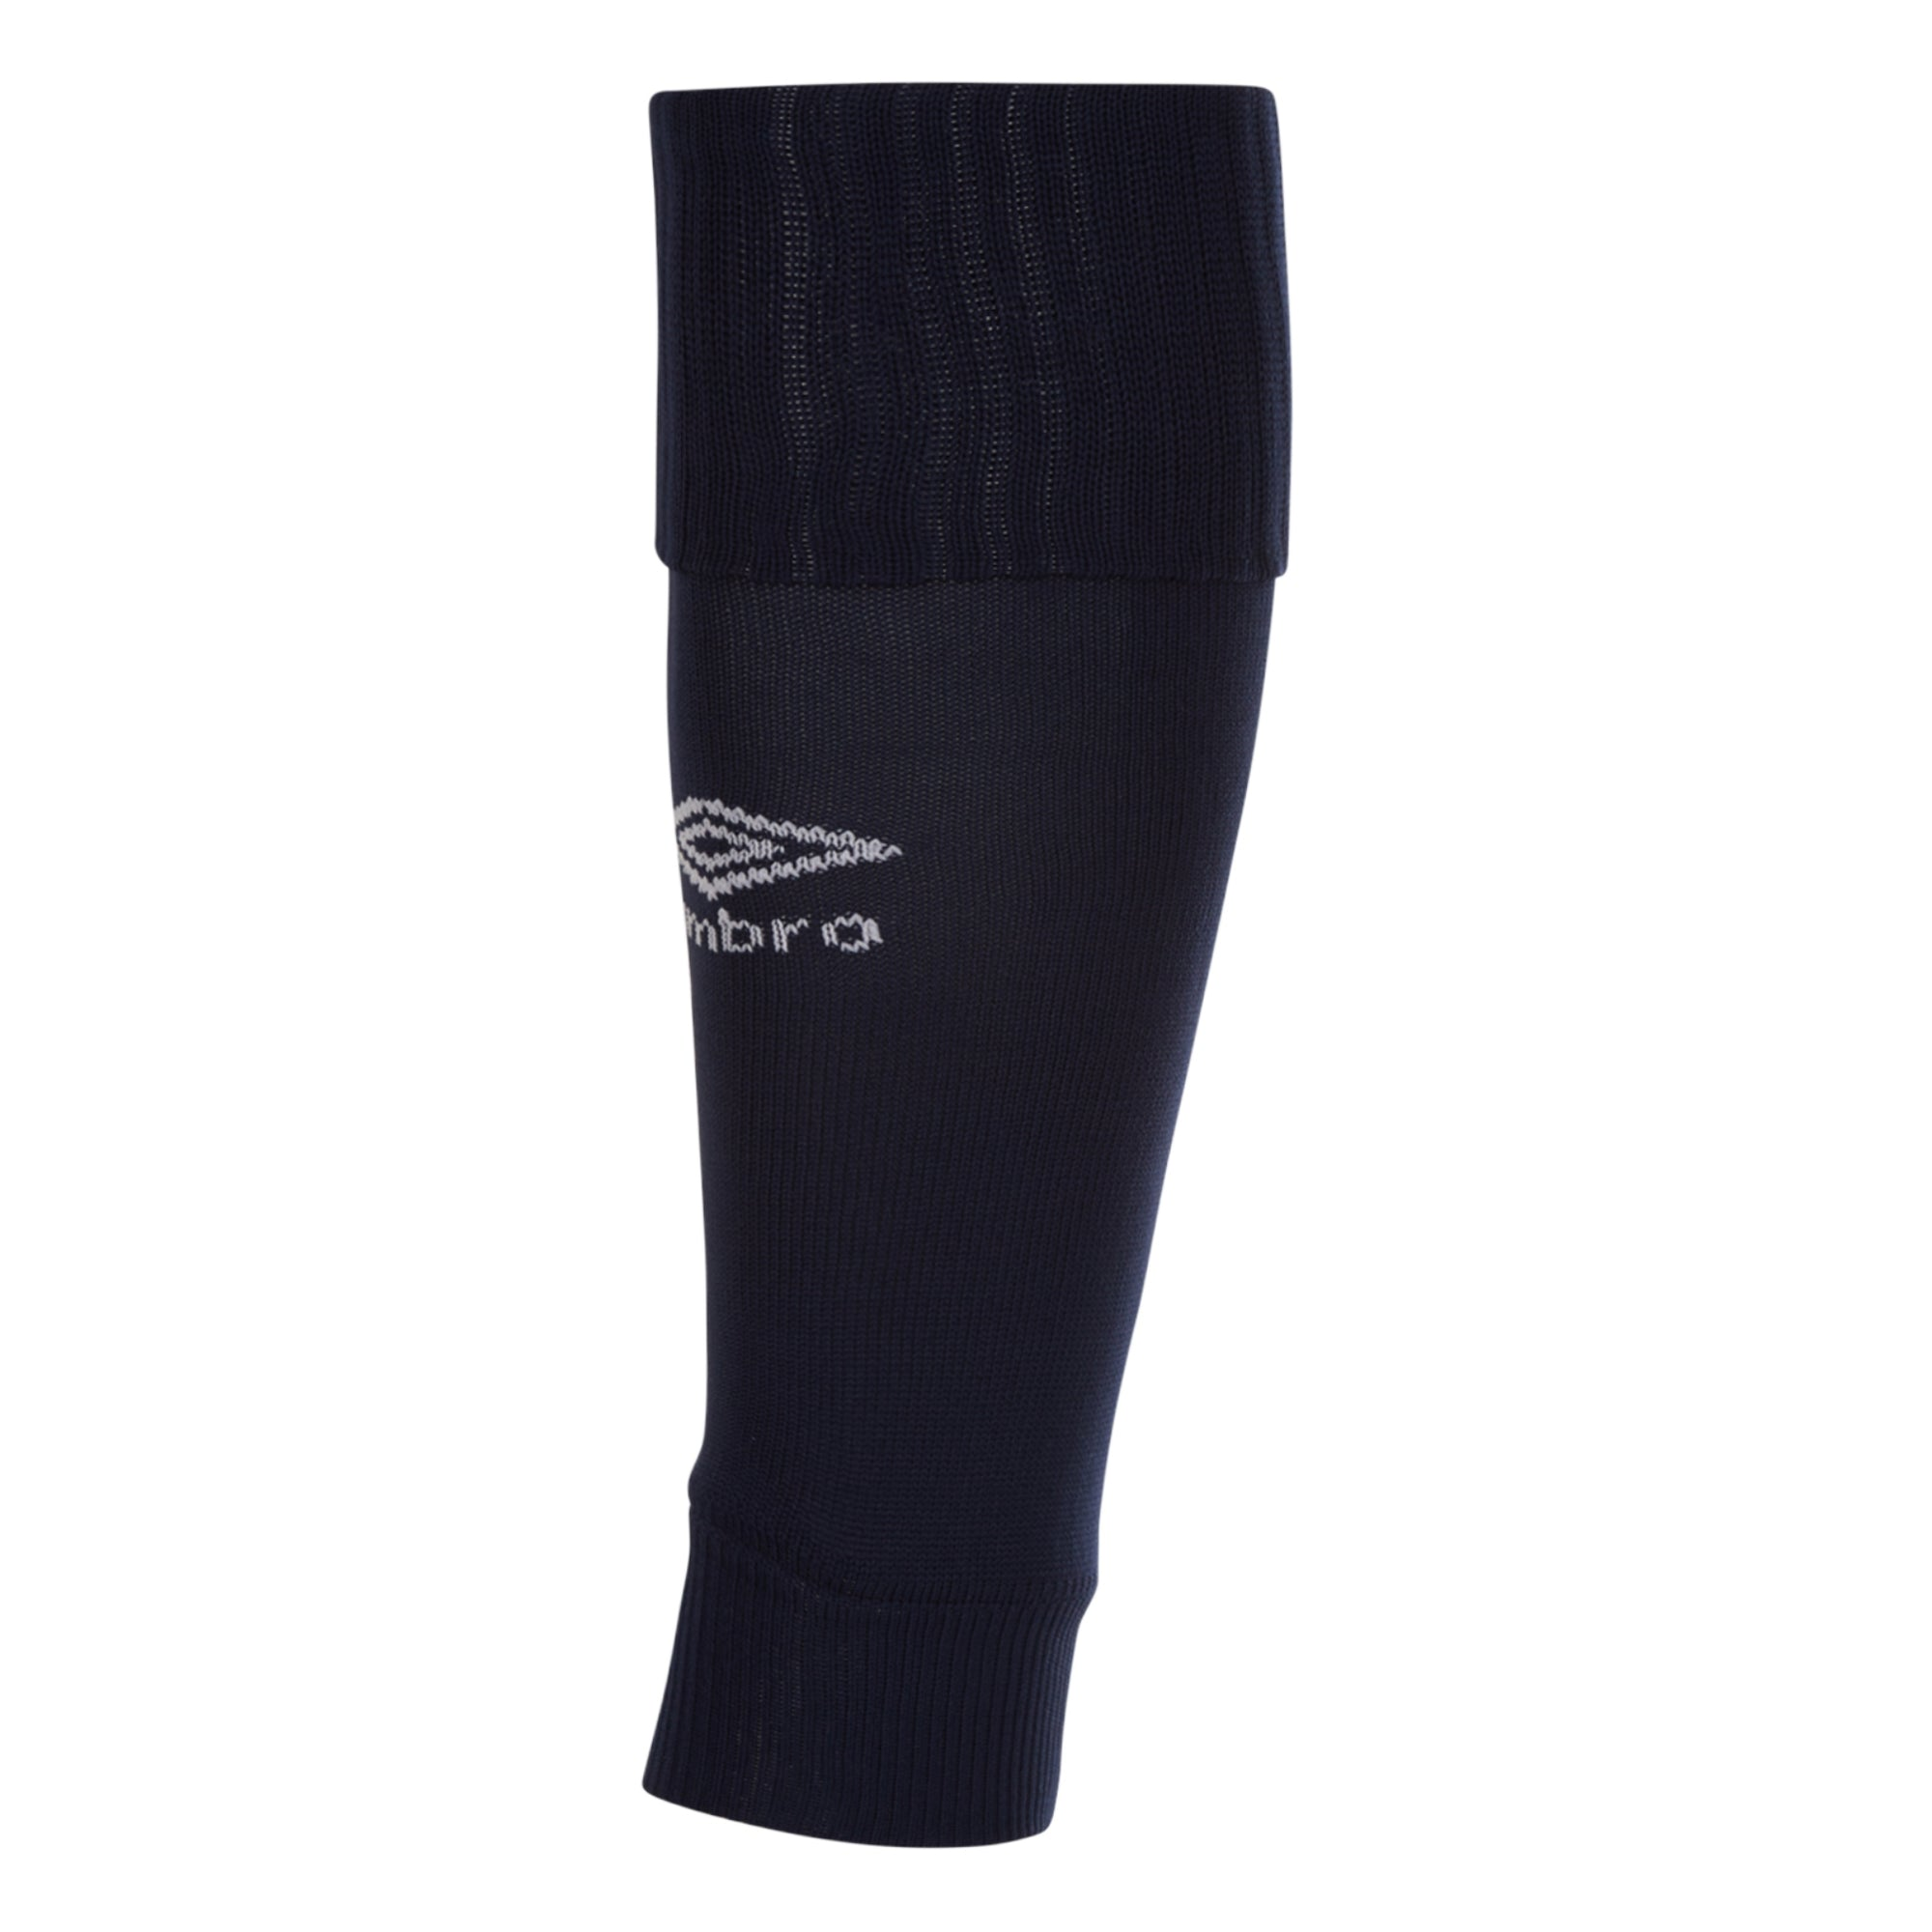 Umbro Sock Leg - Navy